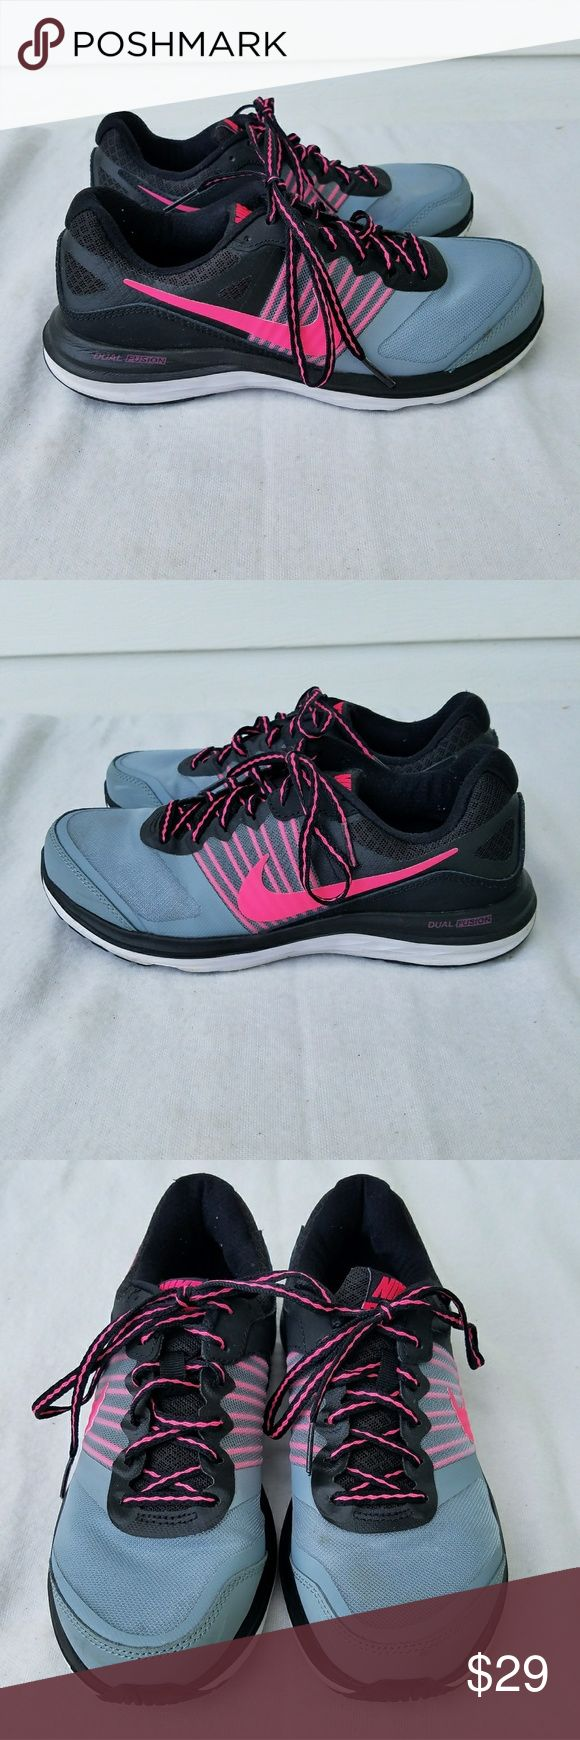 Nike Dual Fusion X running shoes Size 6.5. Great condition. Minor wear on soles. Nike Shoes Athletic Shoes